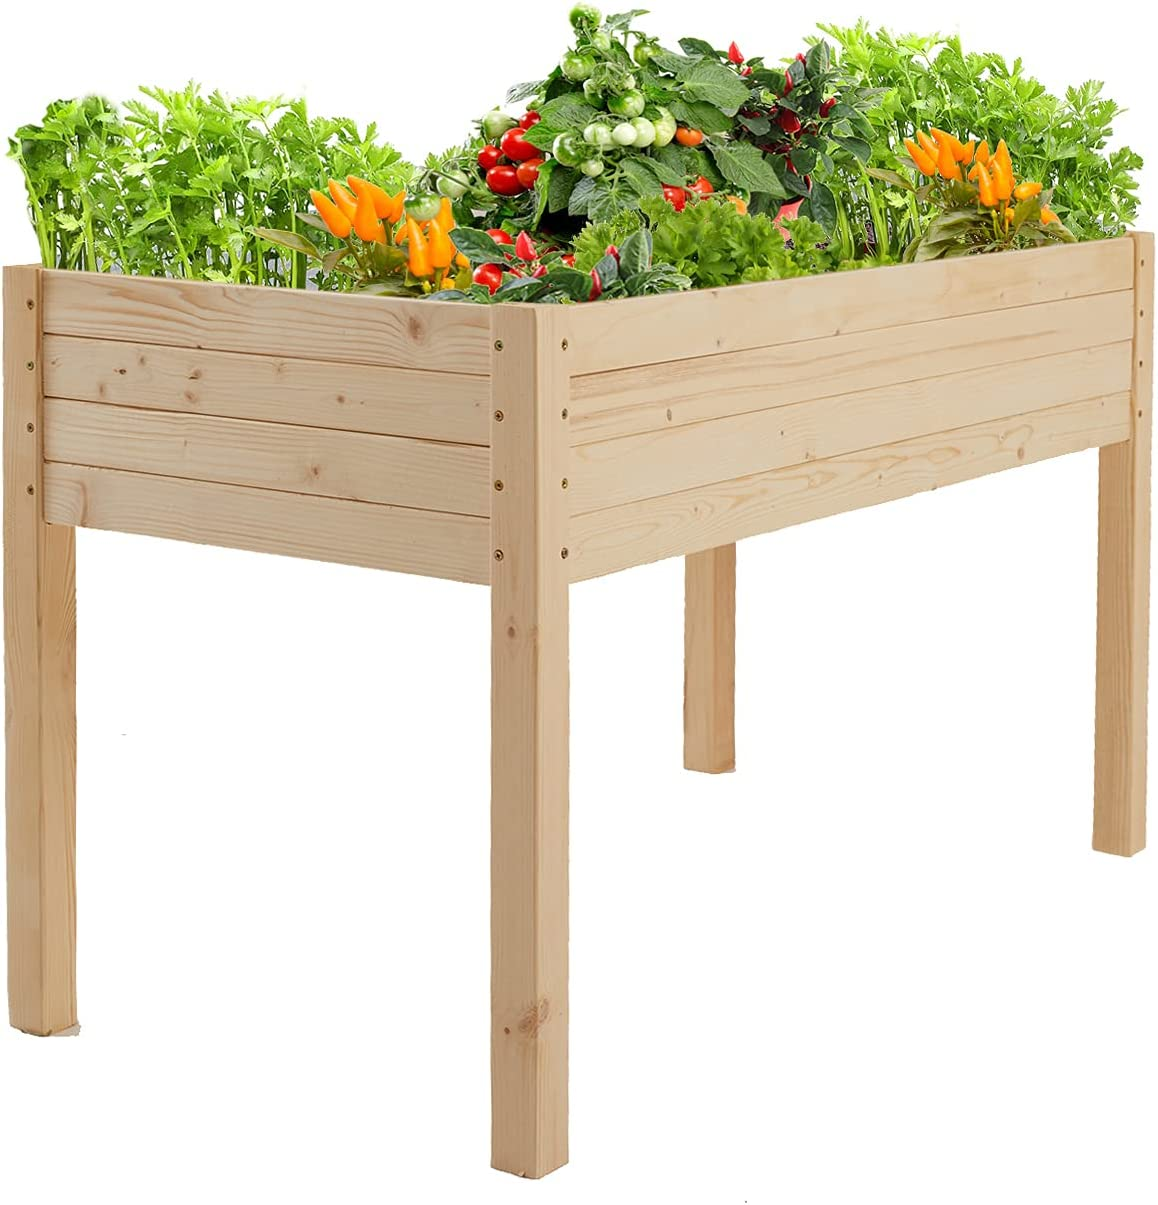 Befrasesl Wooden Raised/Elevated Garden Bed Planter Box Kit for Vegetable/Flower/Herb Outdoor Gardening Natural Wood 48 x 24.5 x 30 inches (US in Stock)